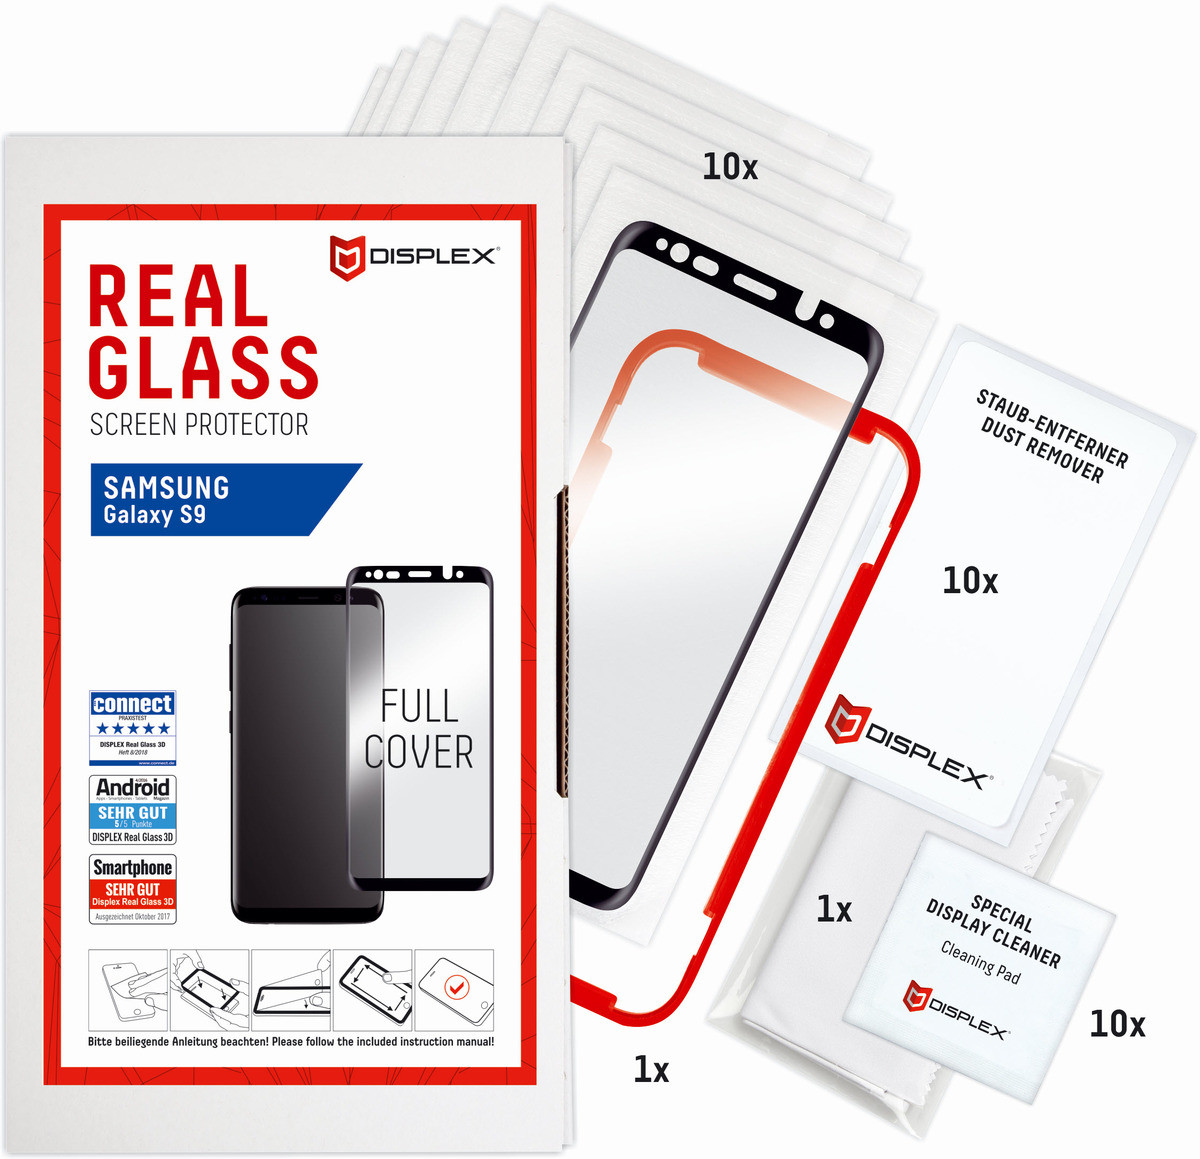 E.V.I. DISPLEX Service-Kit Real Glass 3D Galaxy S9 Schwarz, SK00012